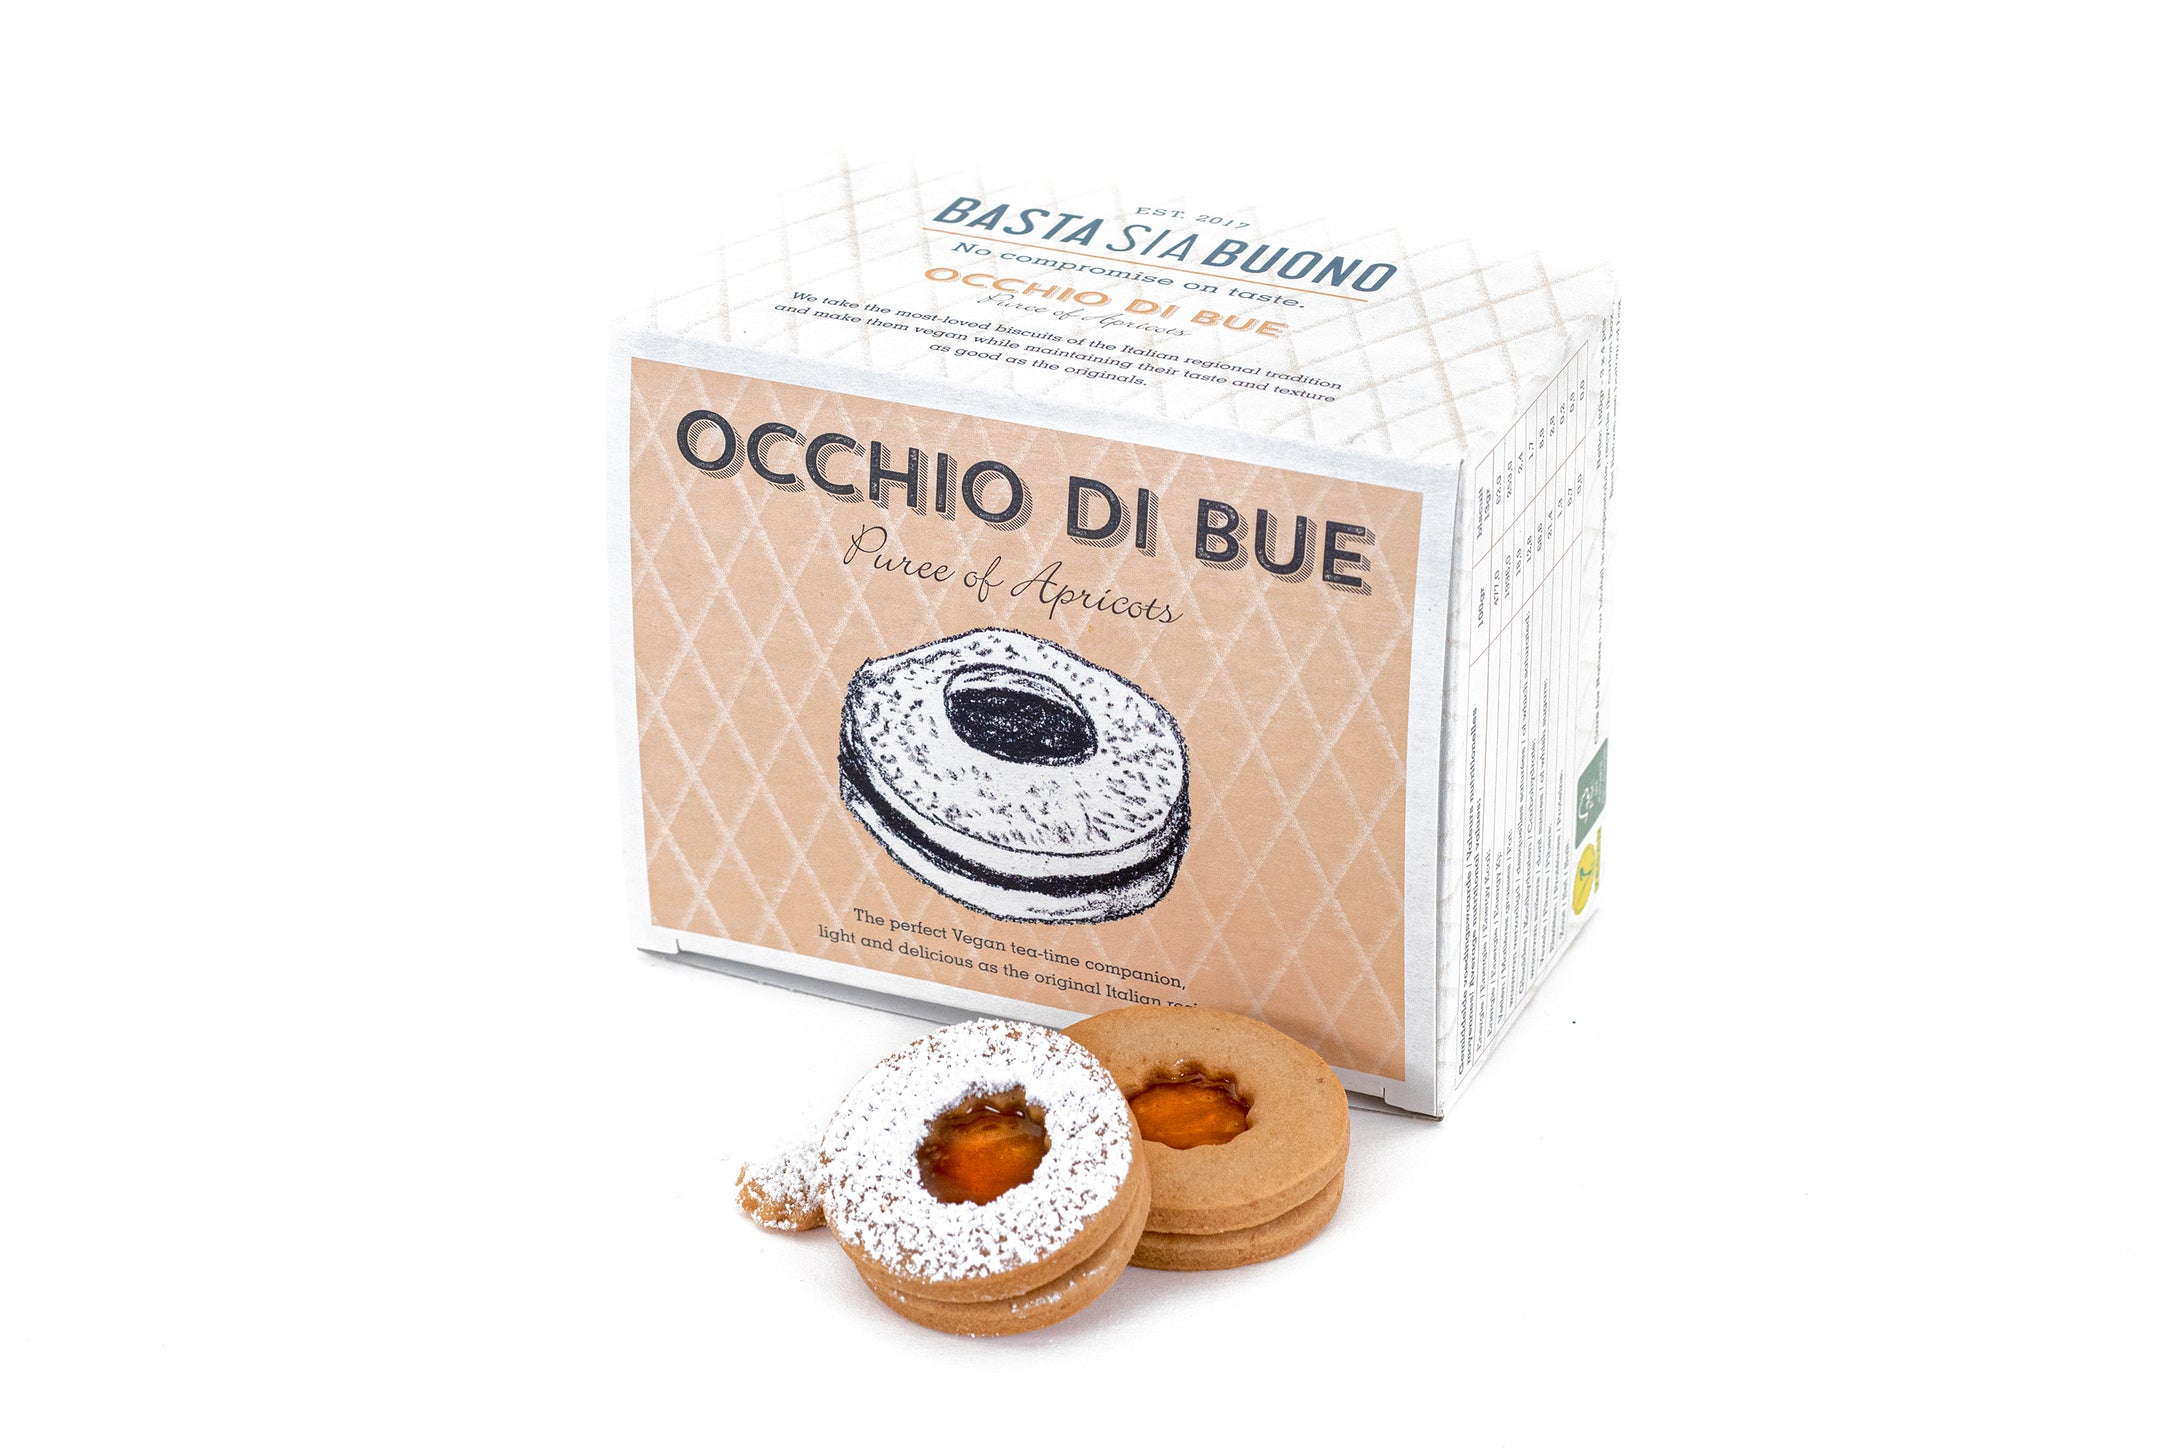 Occhi di Bue: small eco-box of vegan shortbread with apricot compote